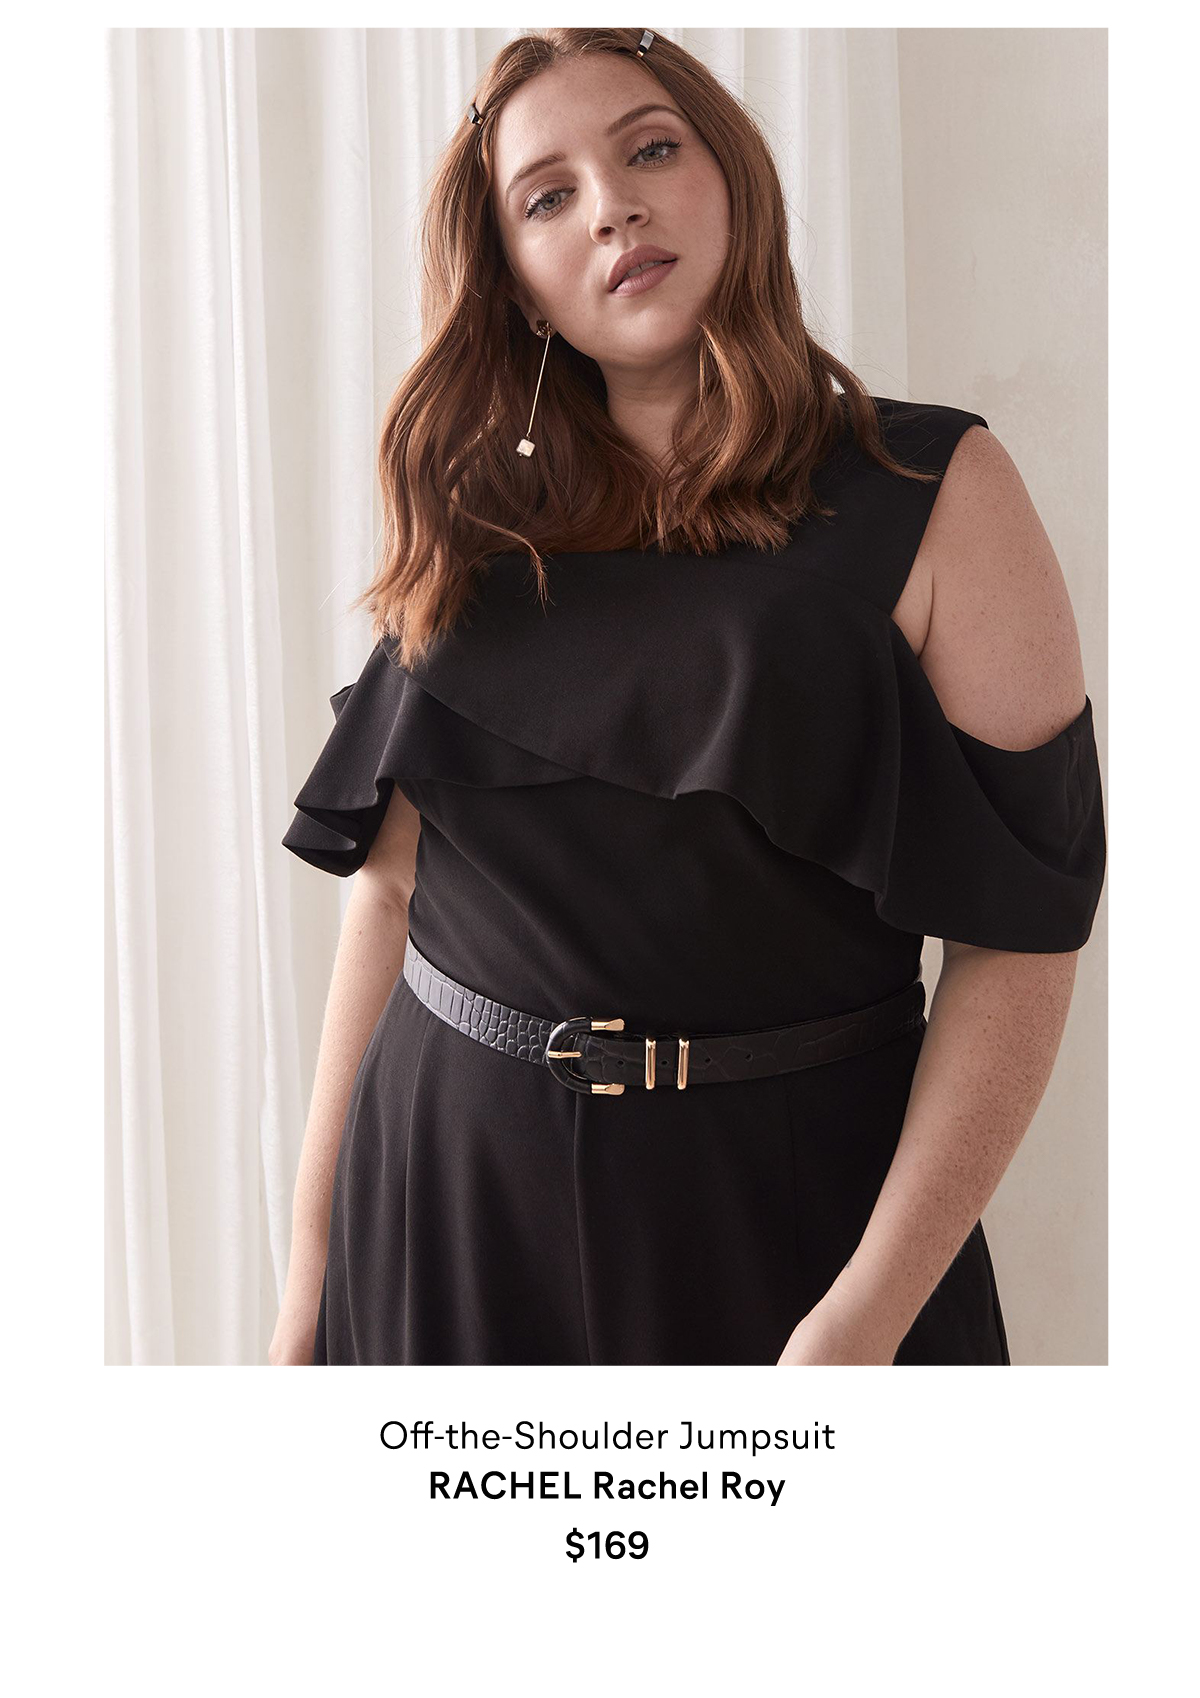 Off-the-Shoulder Jumpsuit - RACHEL Rachel Roy $169 $102